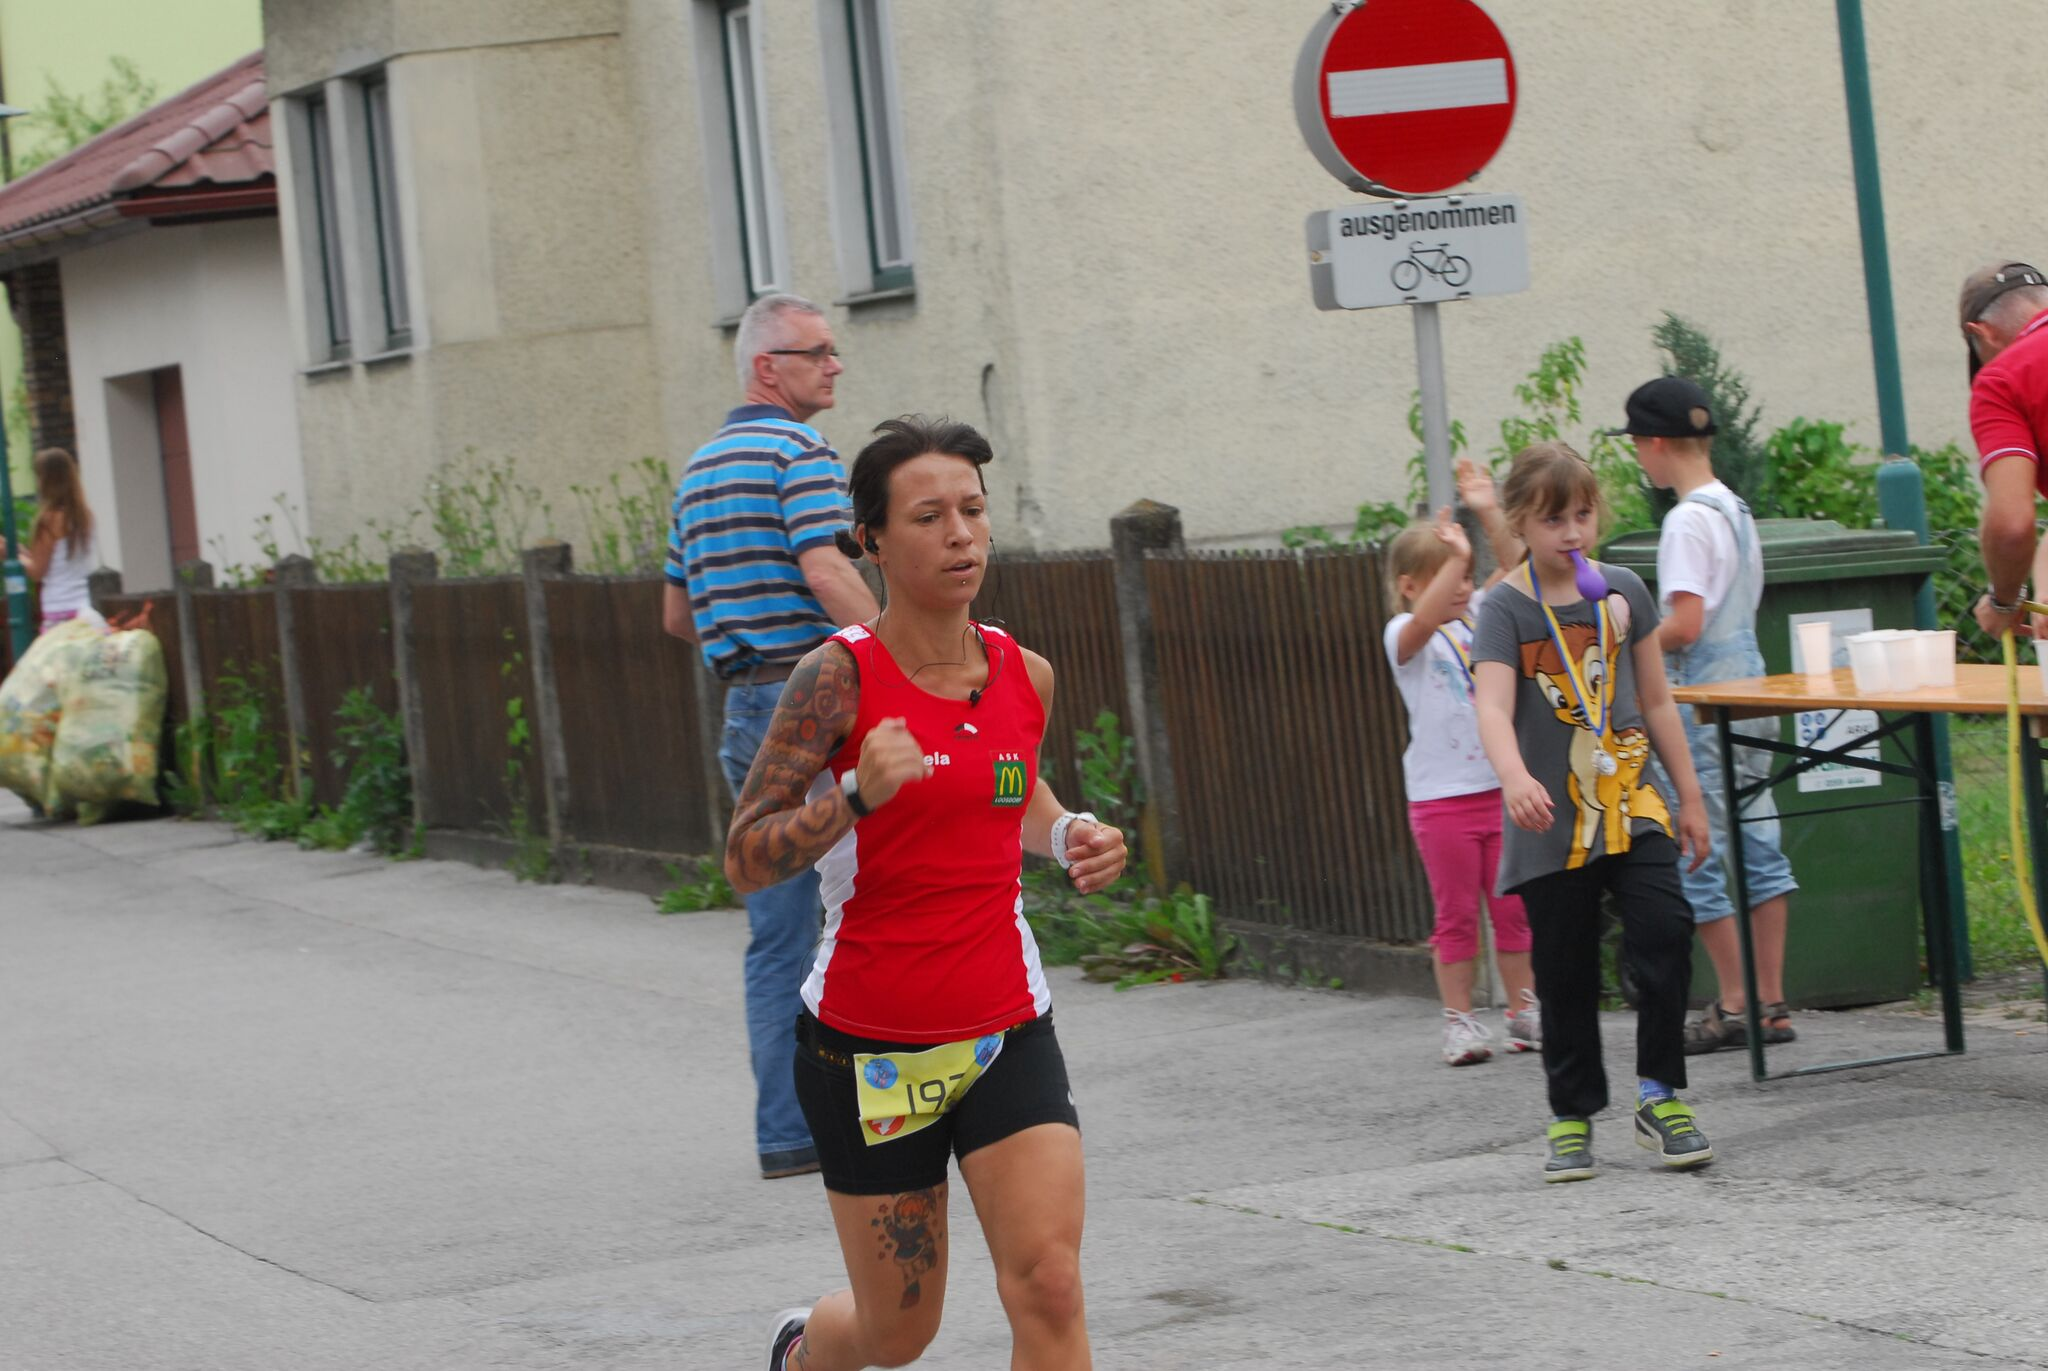 Daniela im Finish